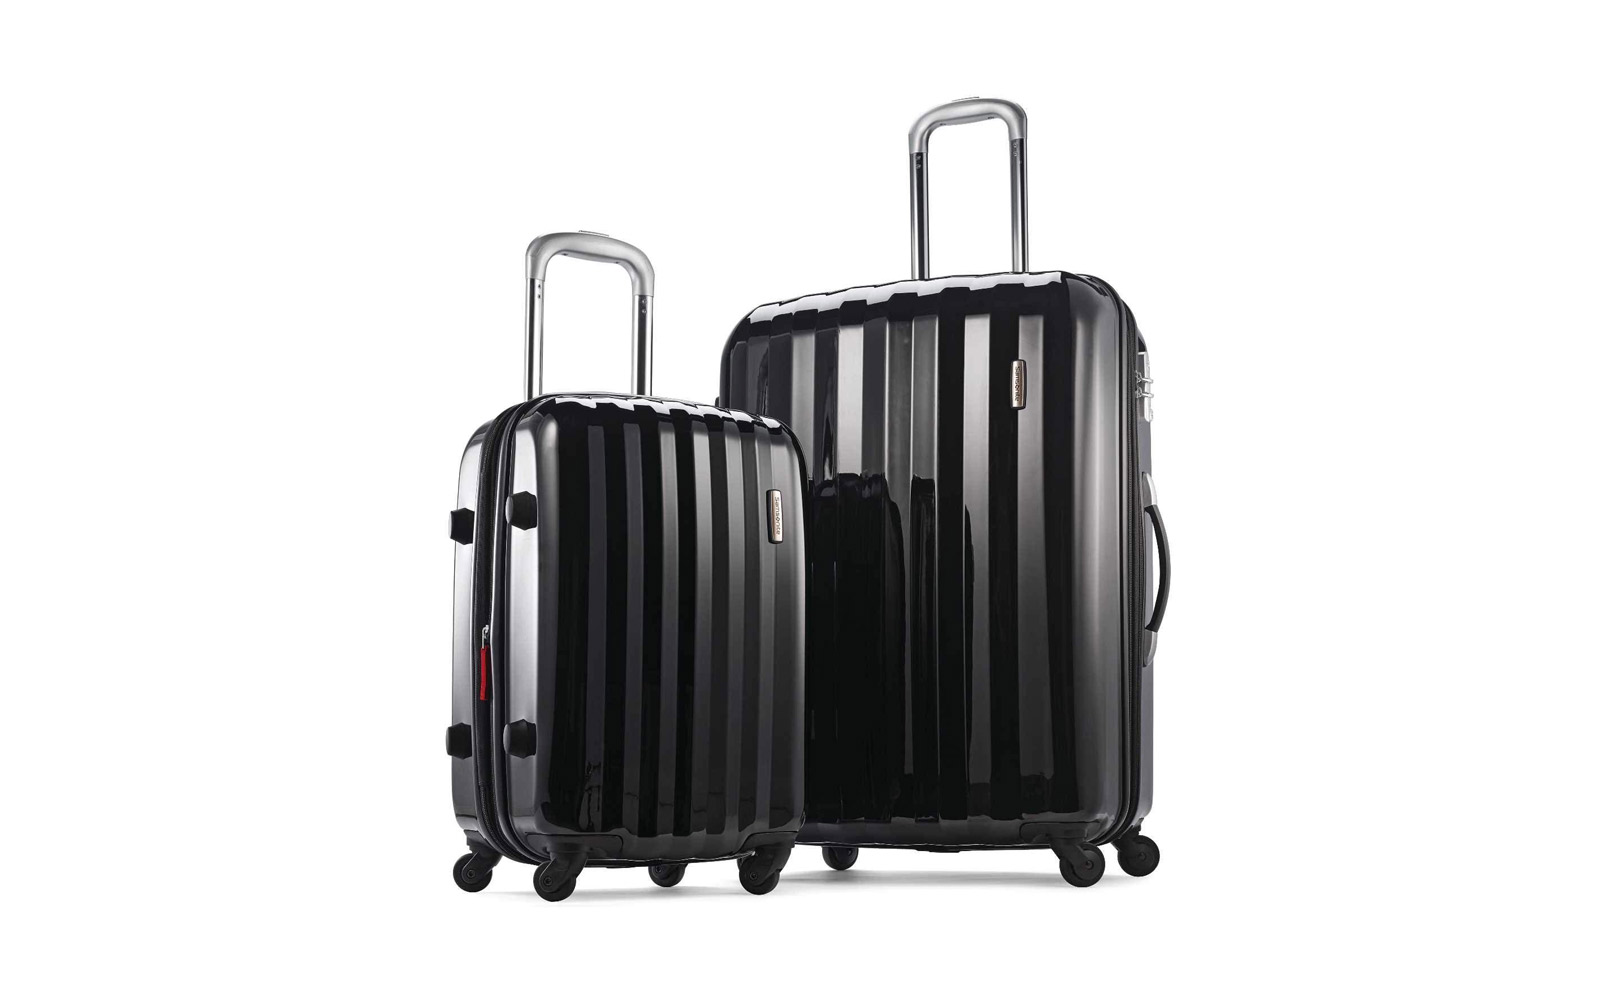 Luggage for sale on Amazon